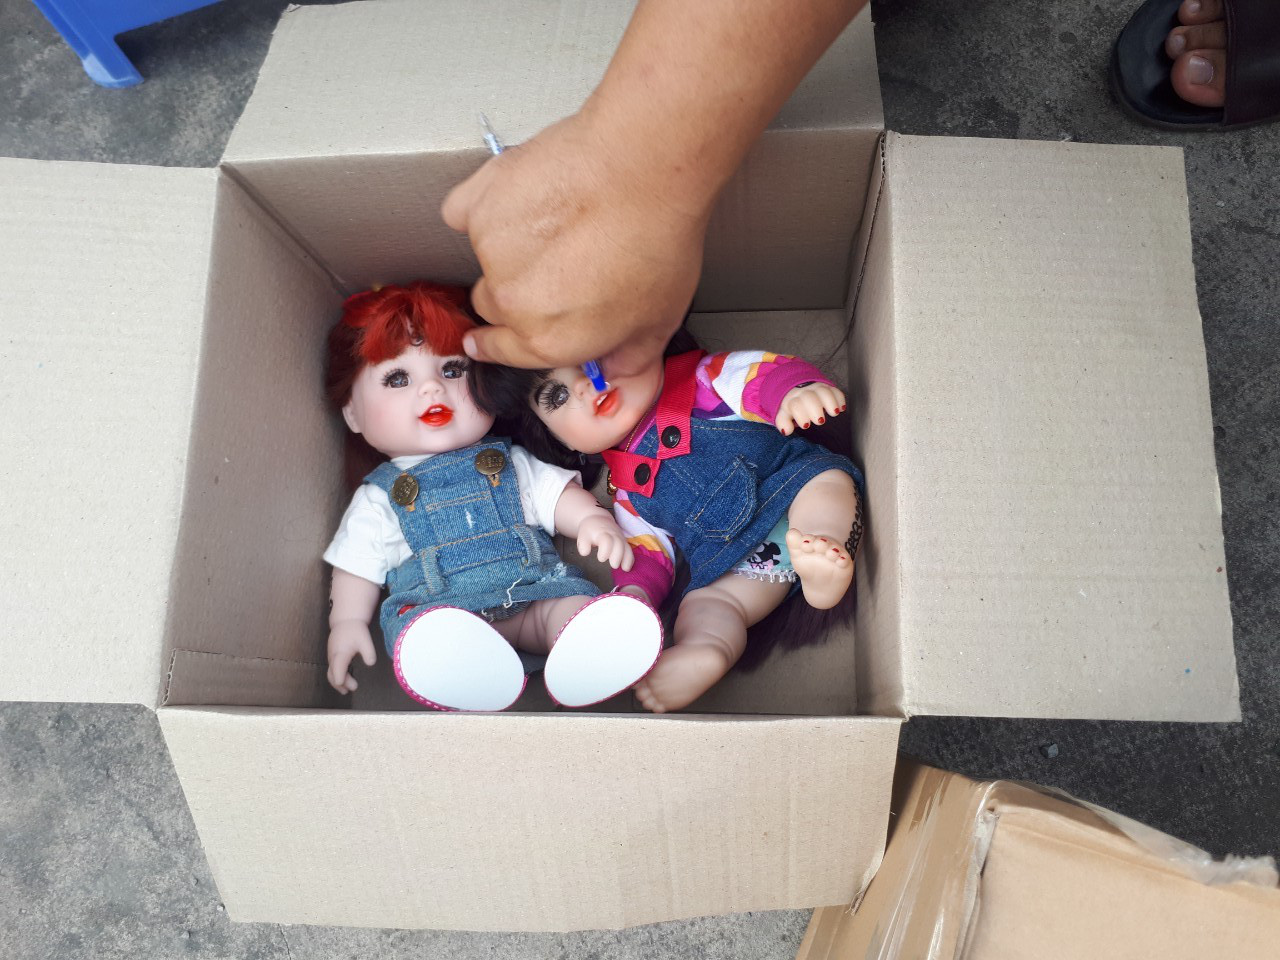 71 suspected Kuman Thong dolls discovered in Vietnam apartment